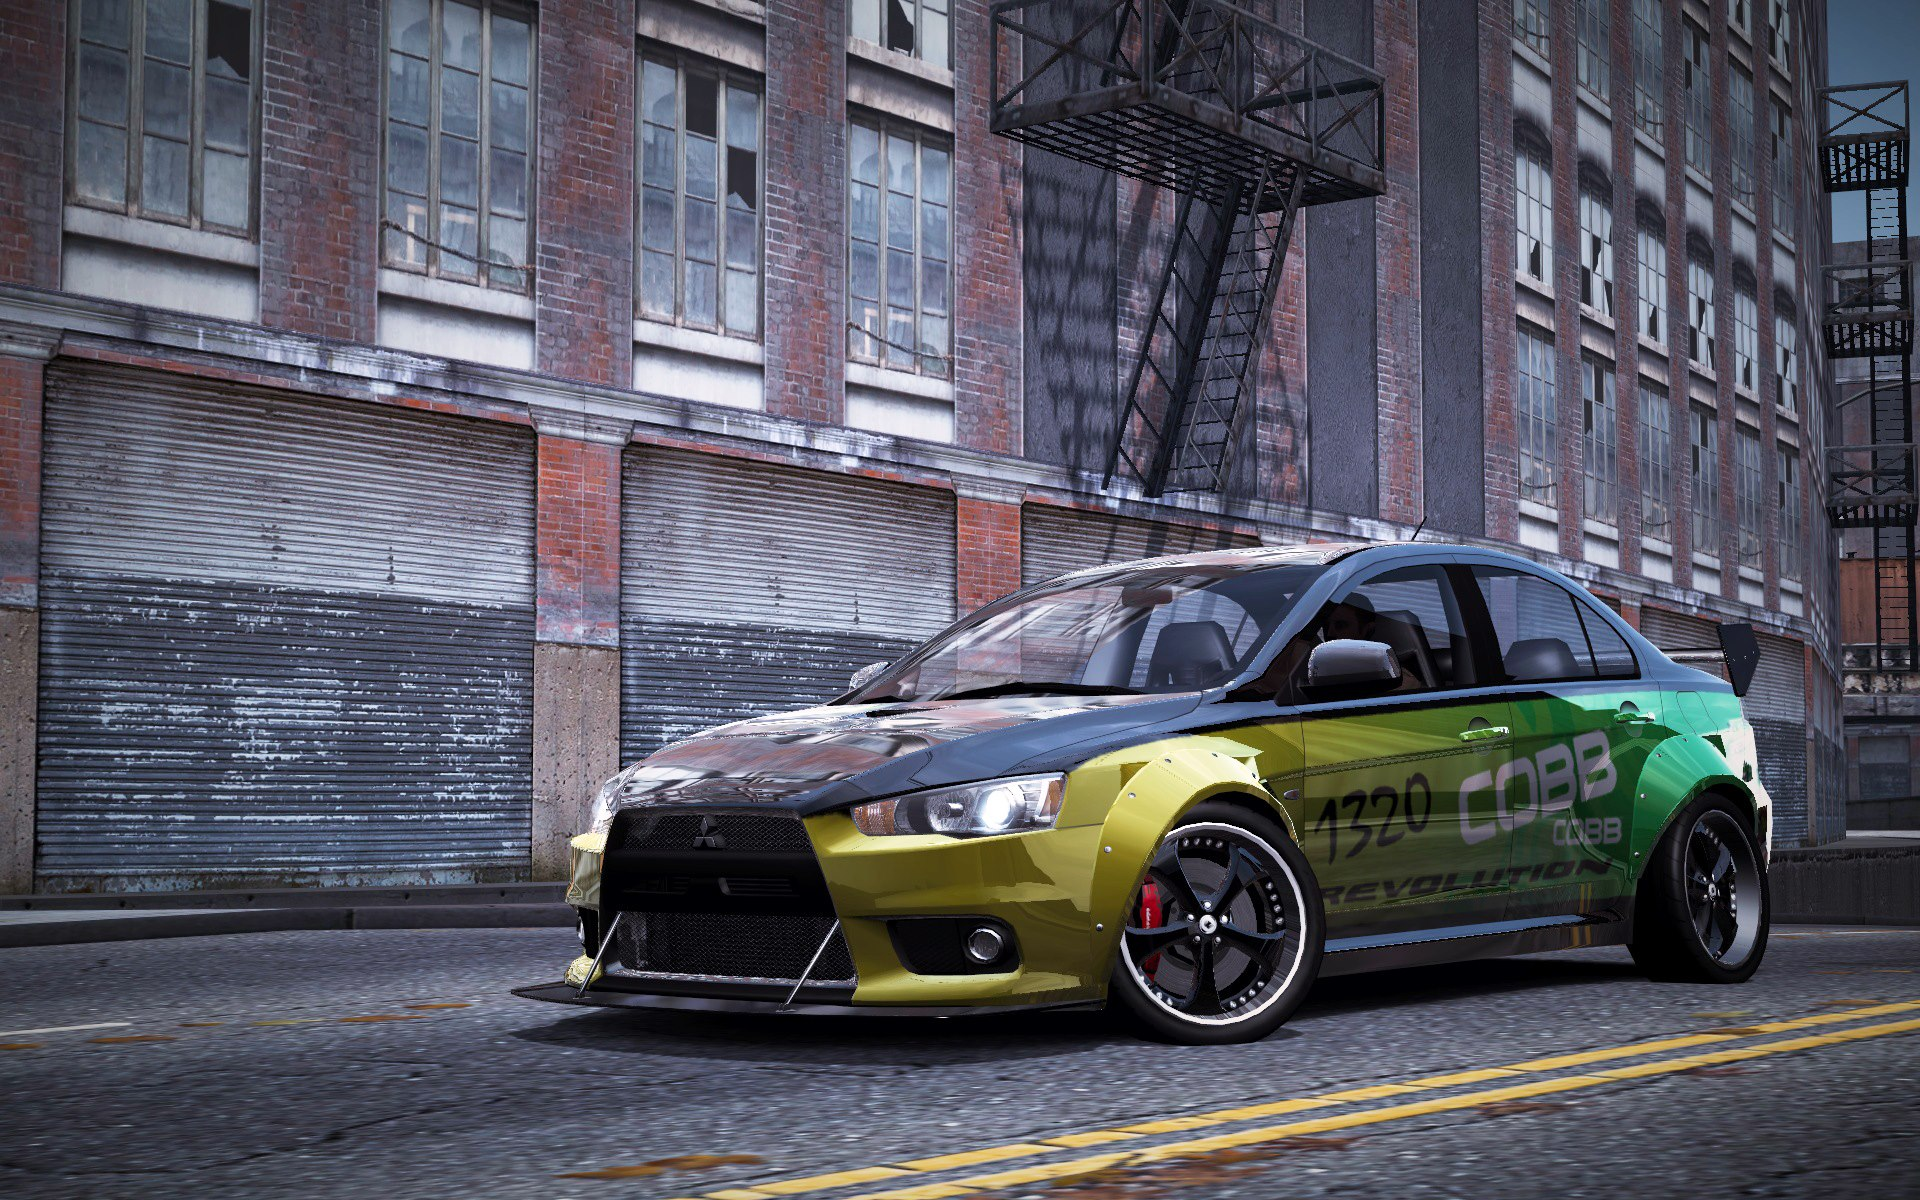 image carrelease mitsubishi lancer evolution x nfs world wiki fandom. Black Bedroom Furniture Sets. Home Design Ideas